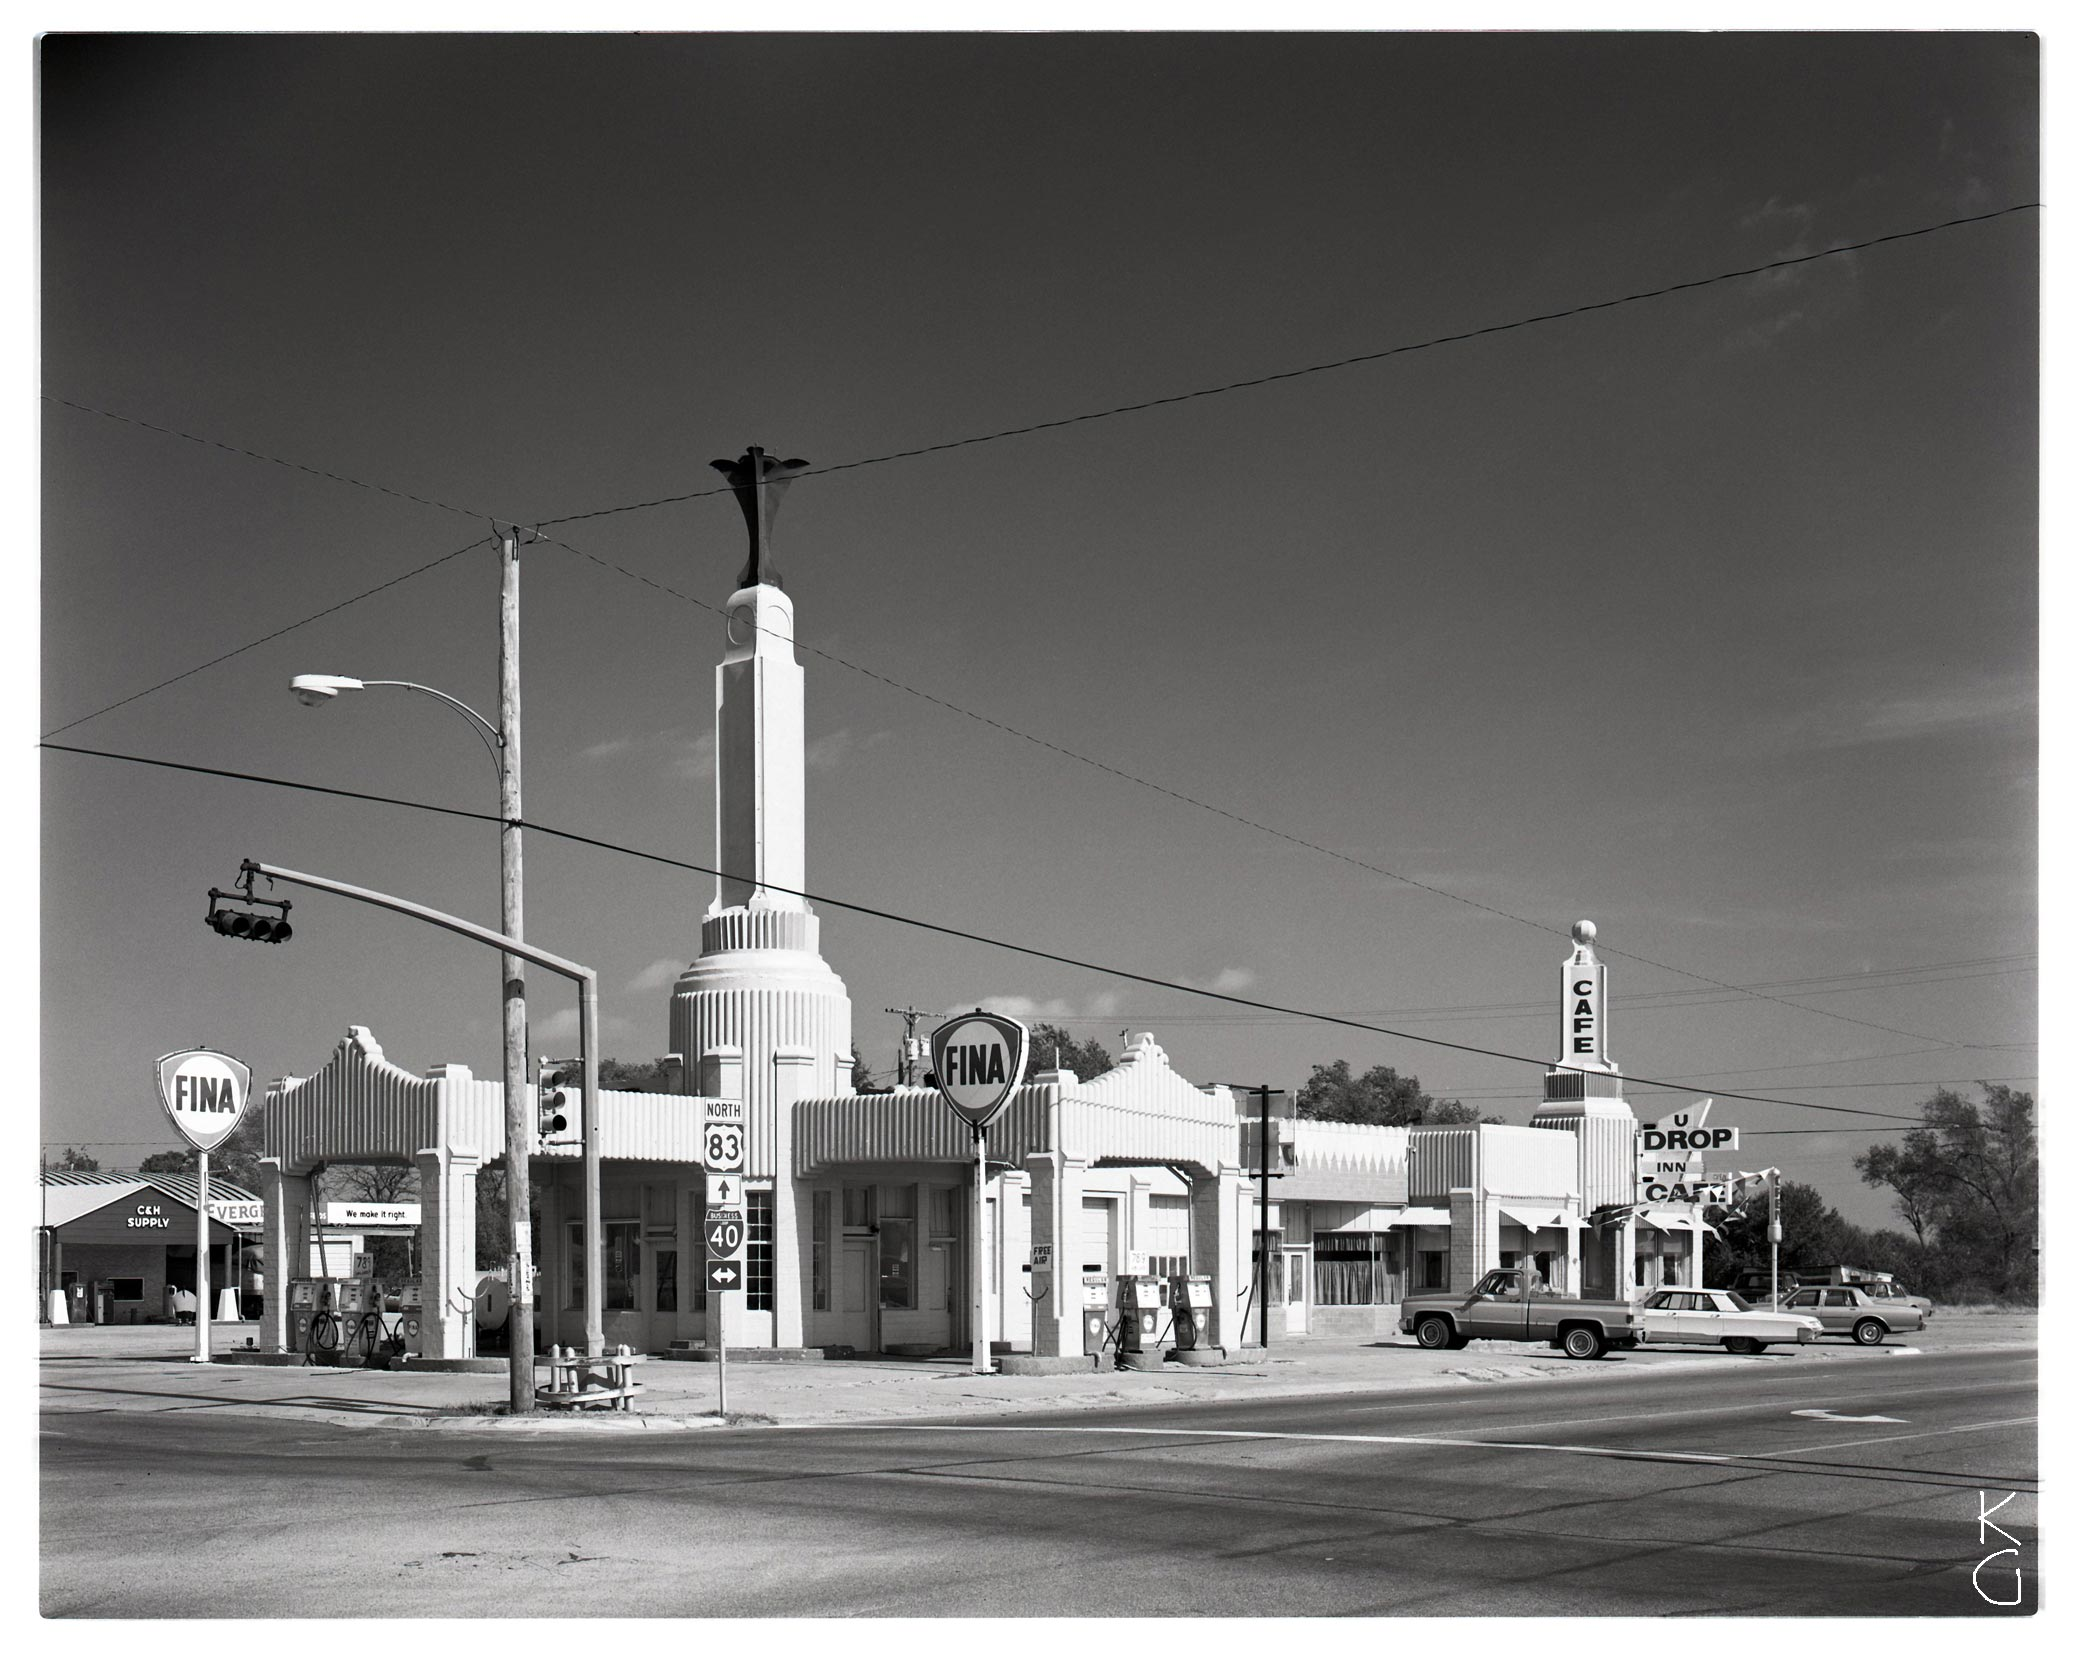 Fina Gas Station, The Panhandle 1987